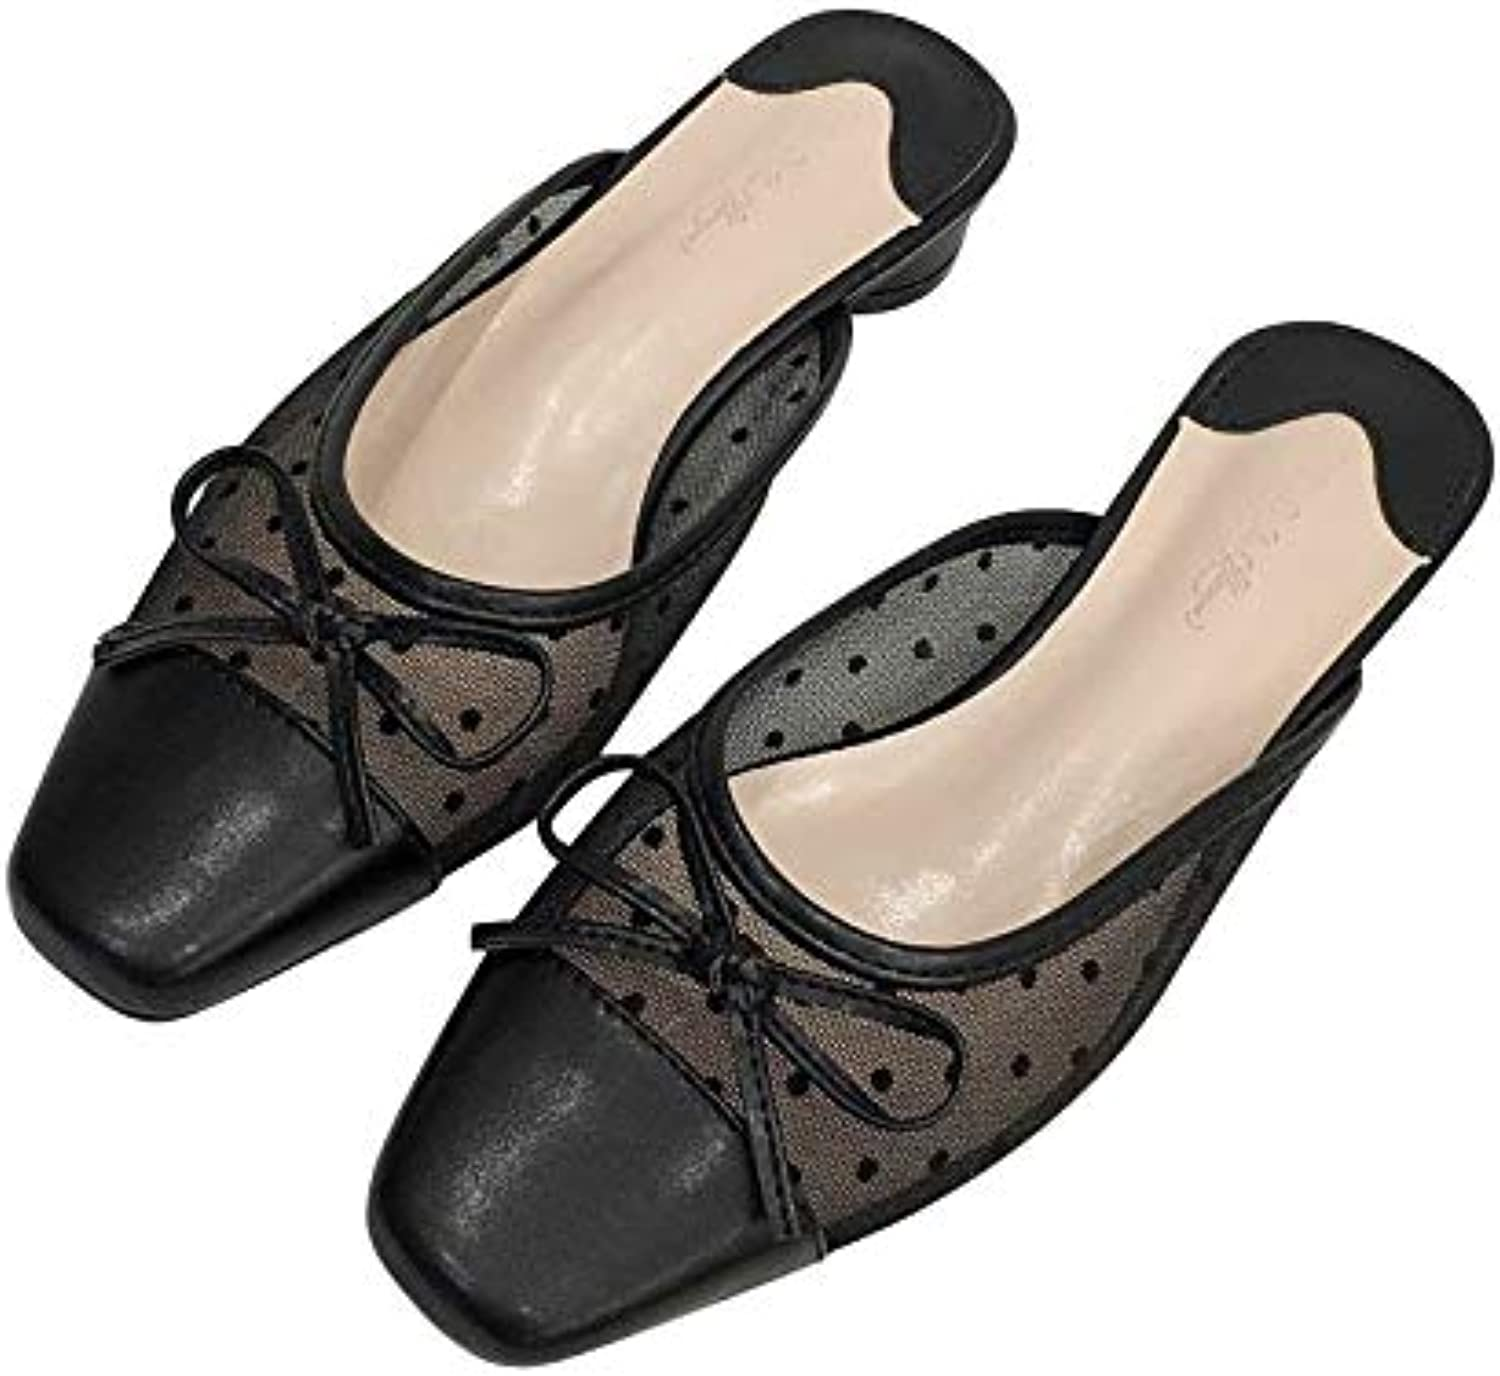 Super explosion Women's Backless Lazy Loafers Flats Slip On Mules shoes Walking Slipper